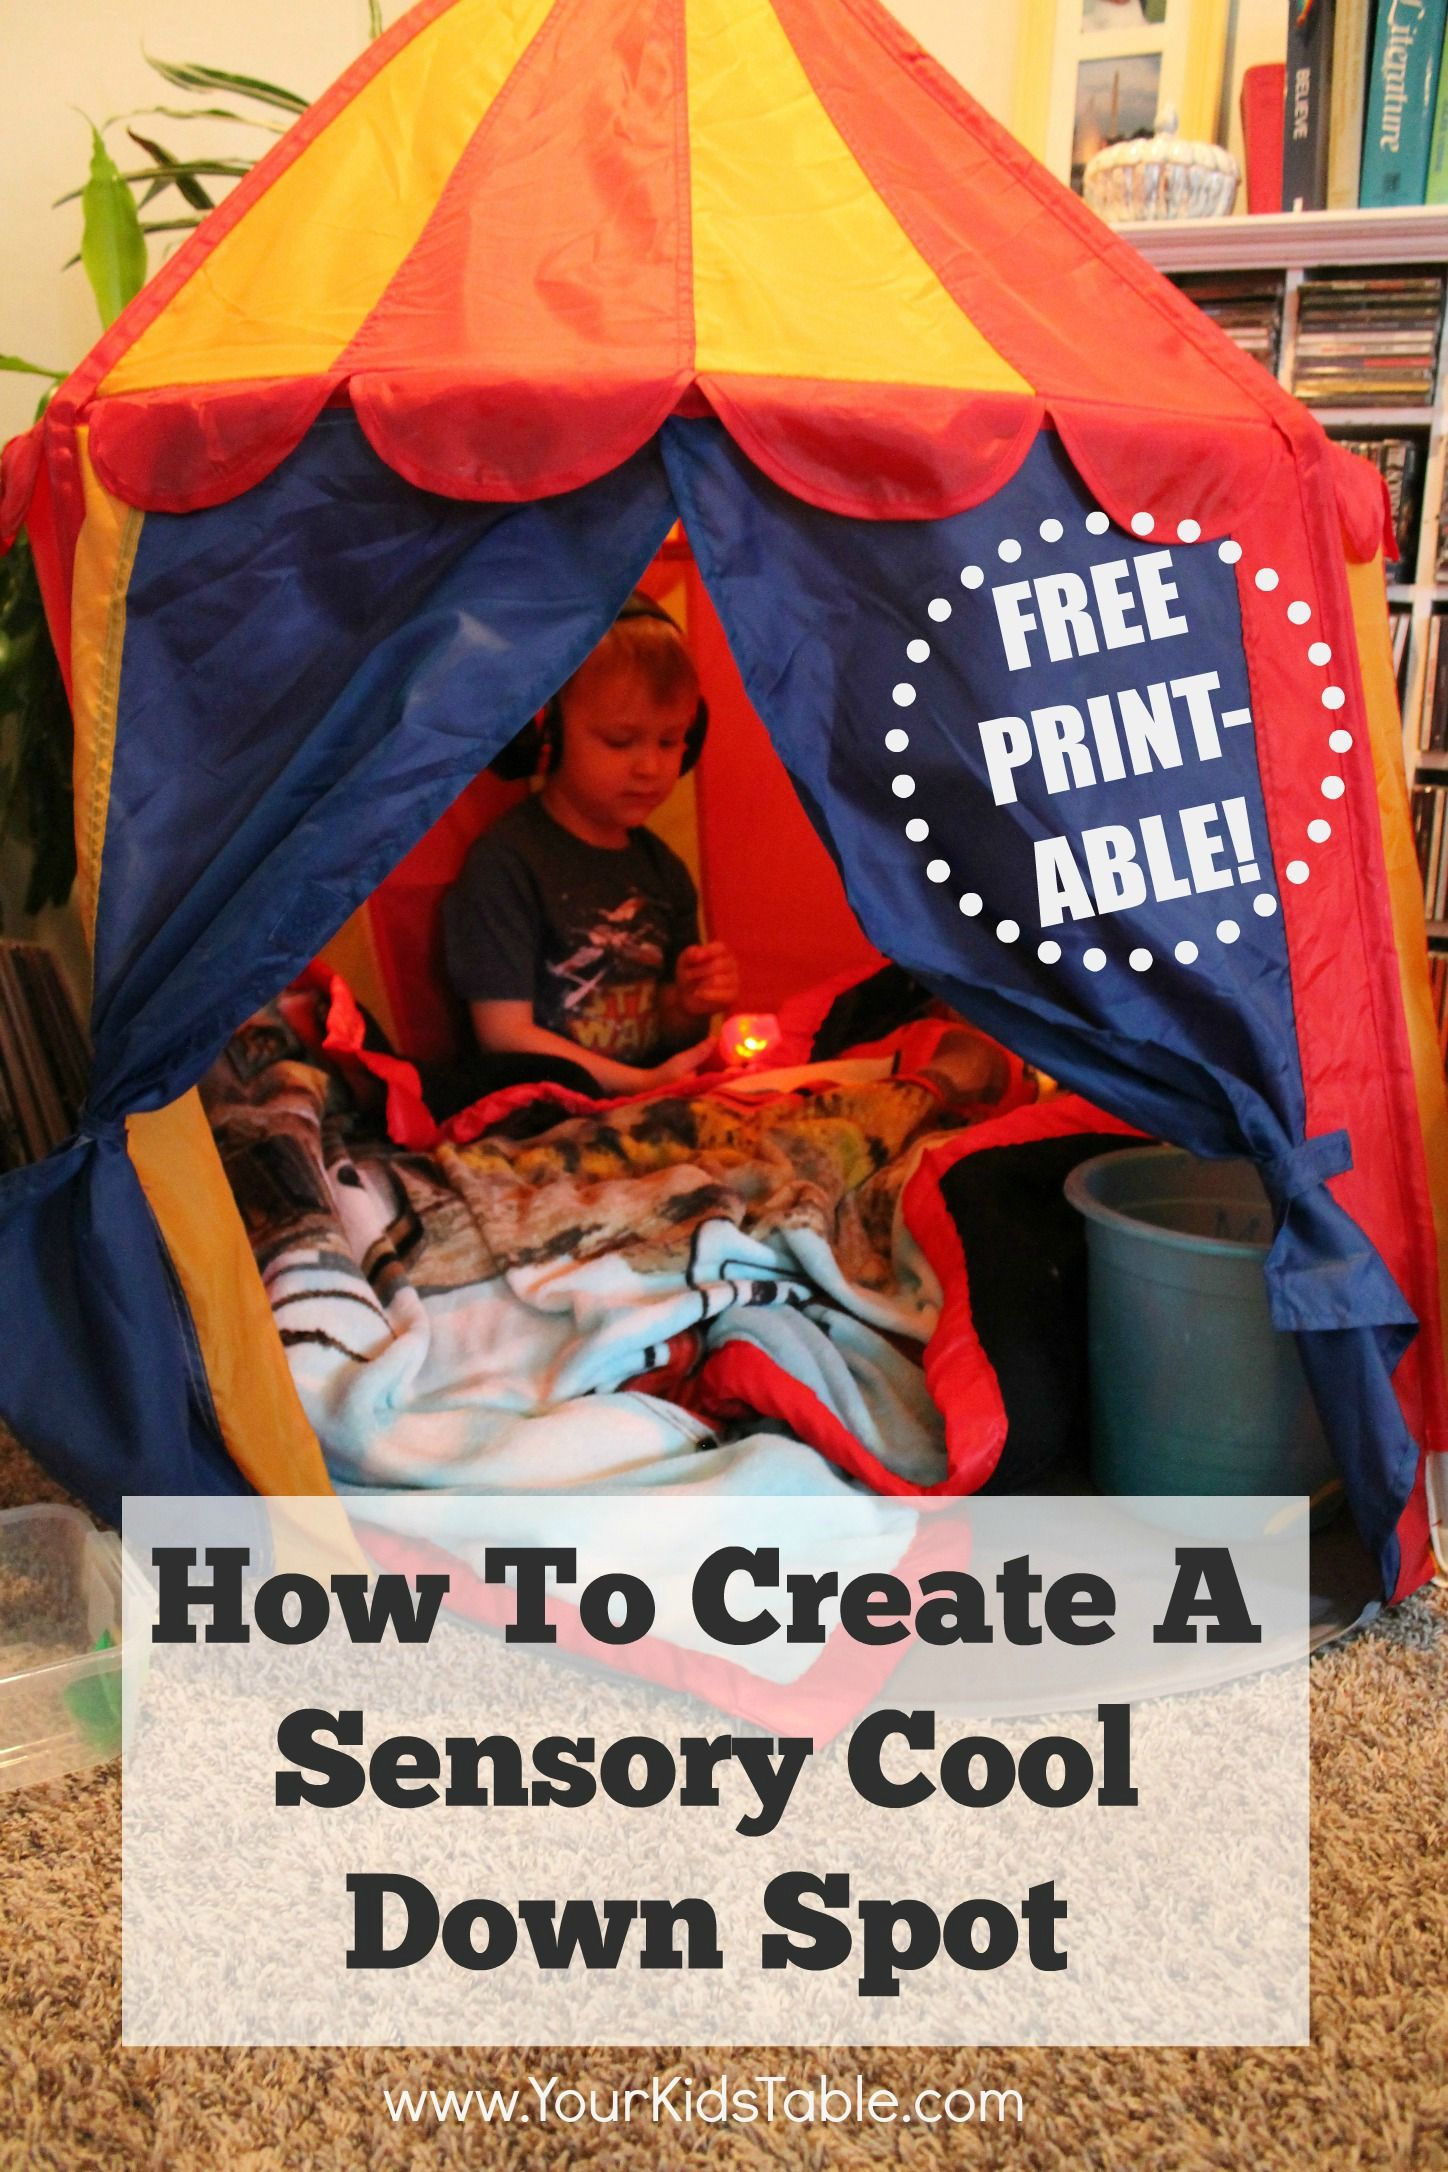 How To Create A Quick And Easy Sensory Tent For Kids